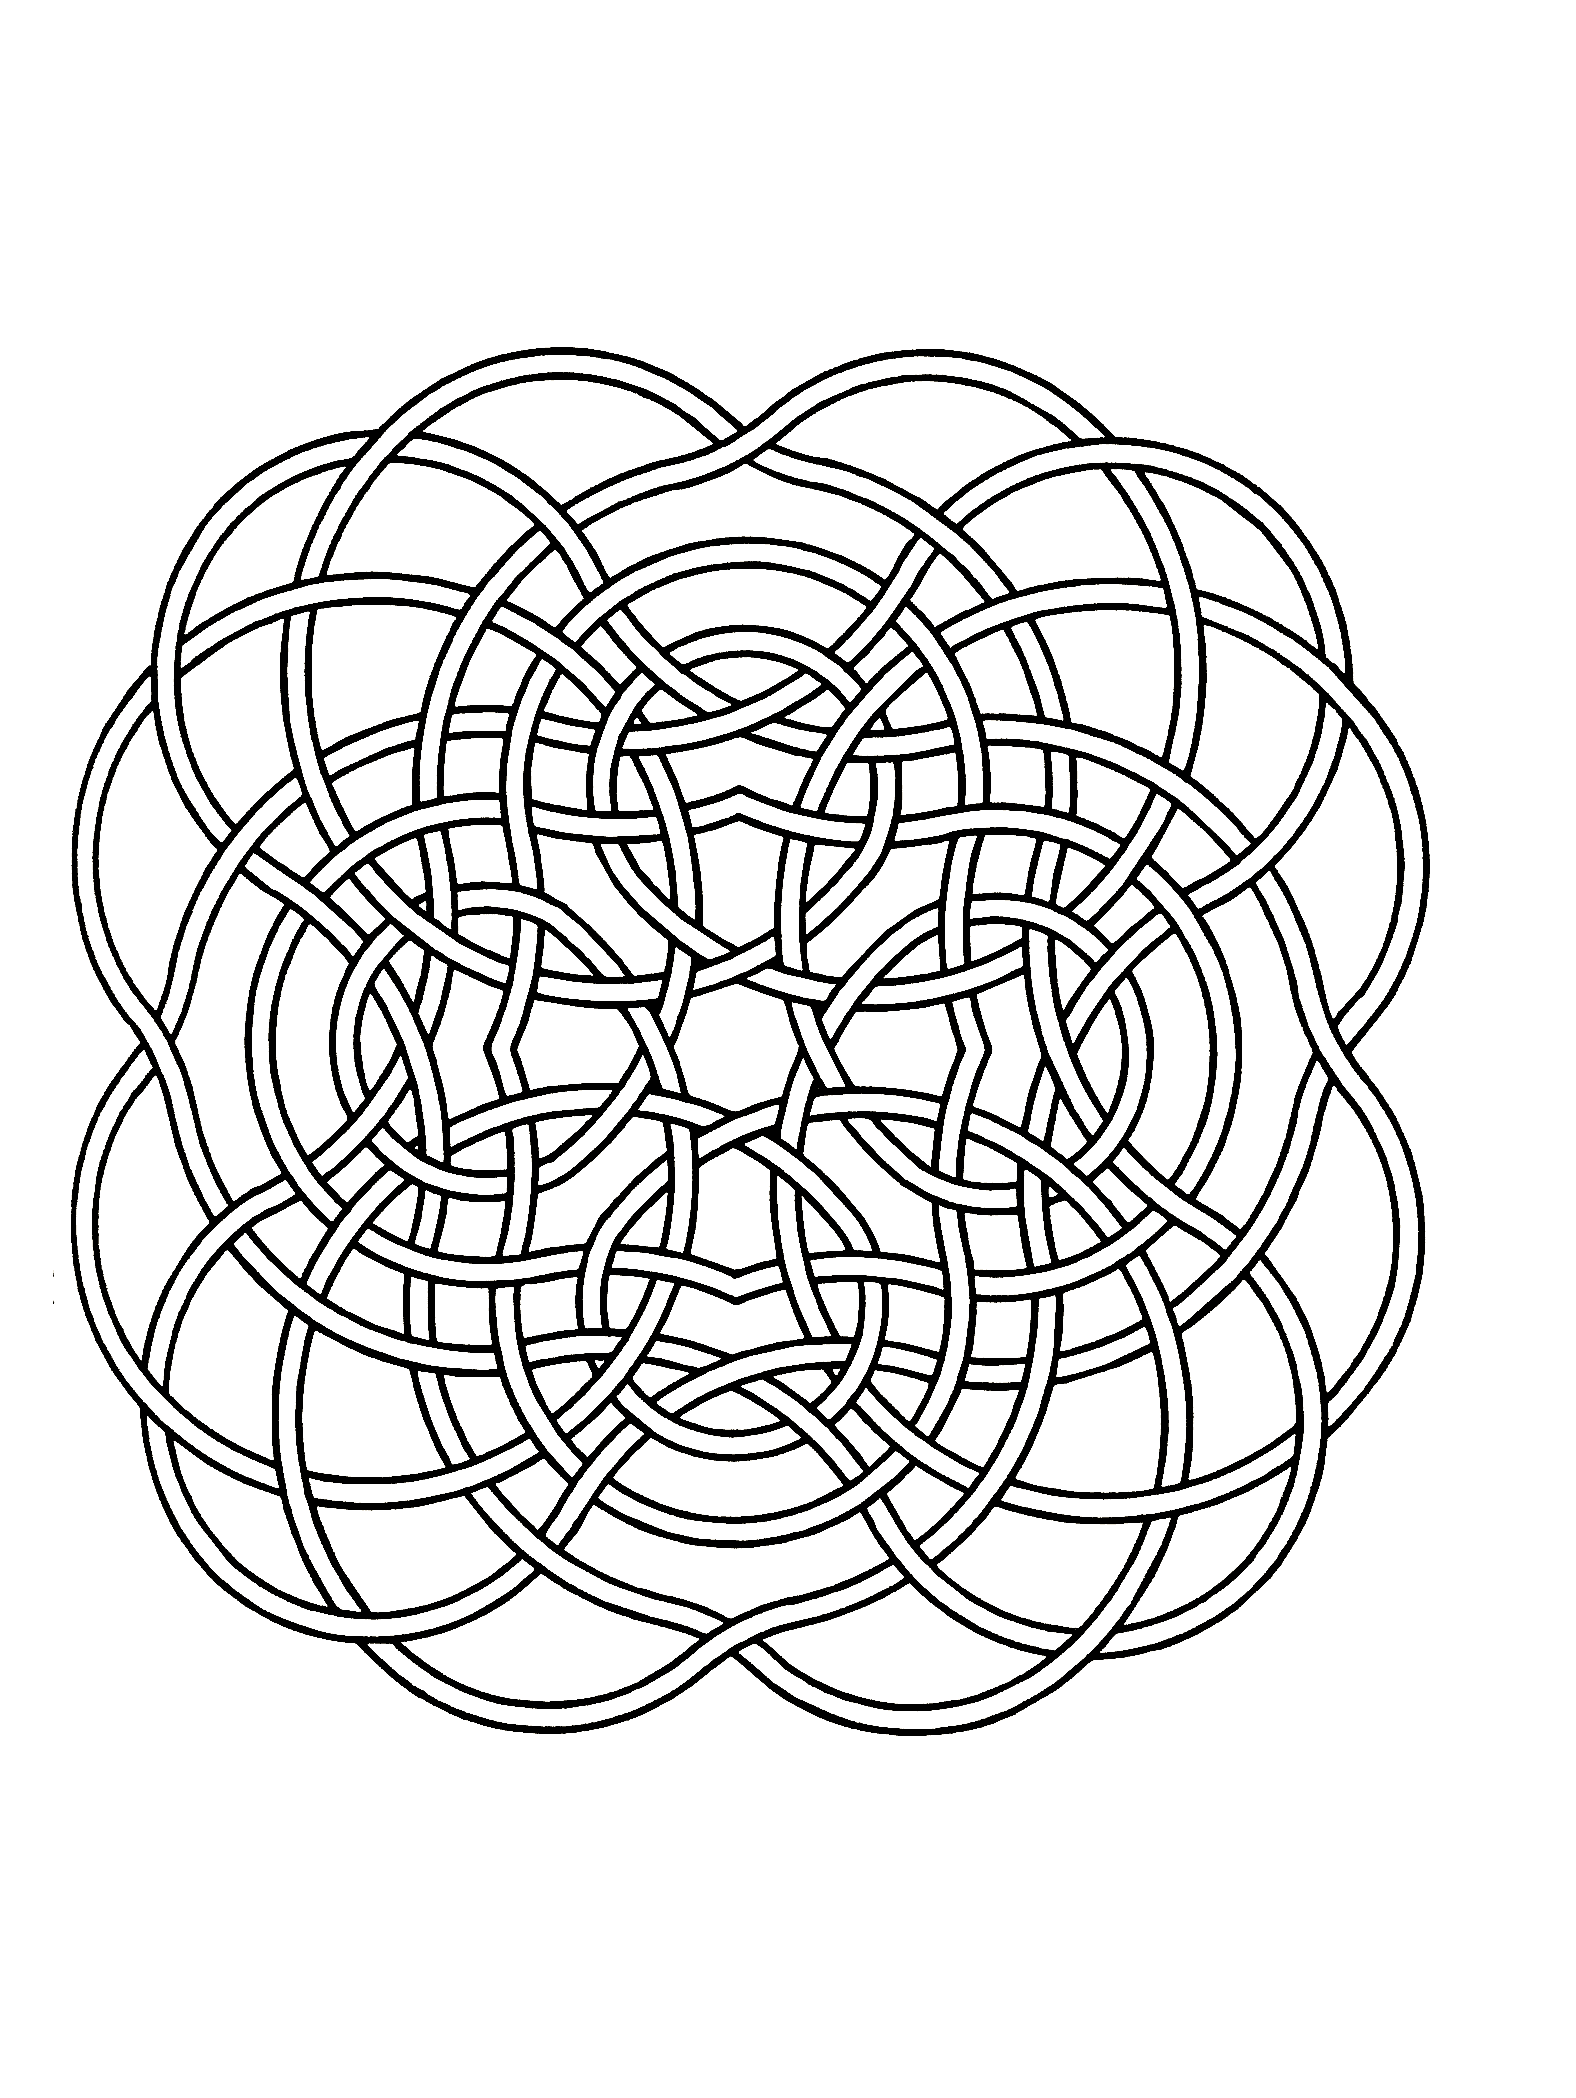 simple mandalas to color free mandala mpc design 10 simple mandalas 100 color mandalas simple to